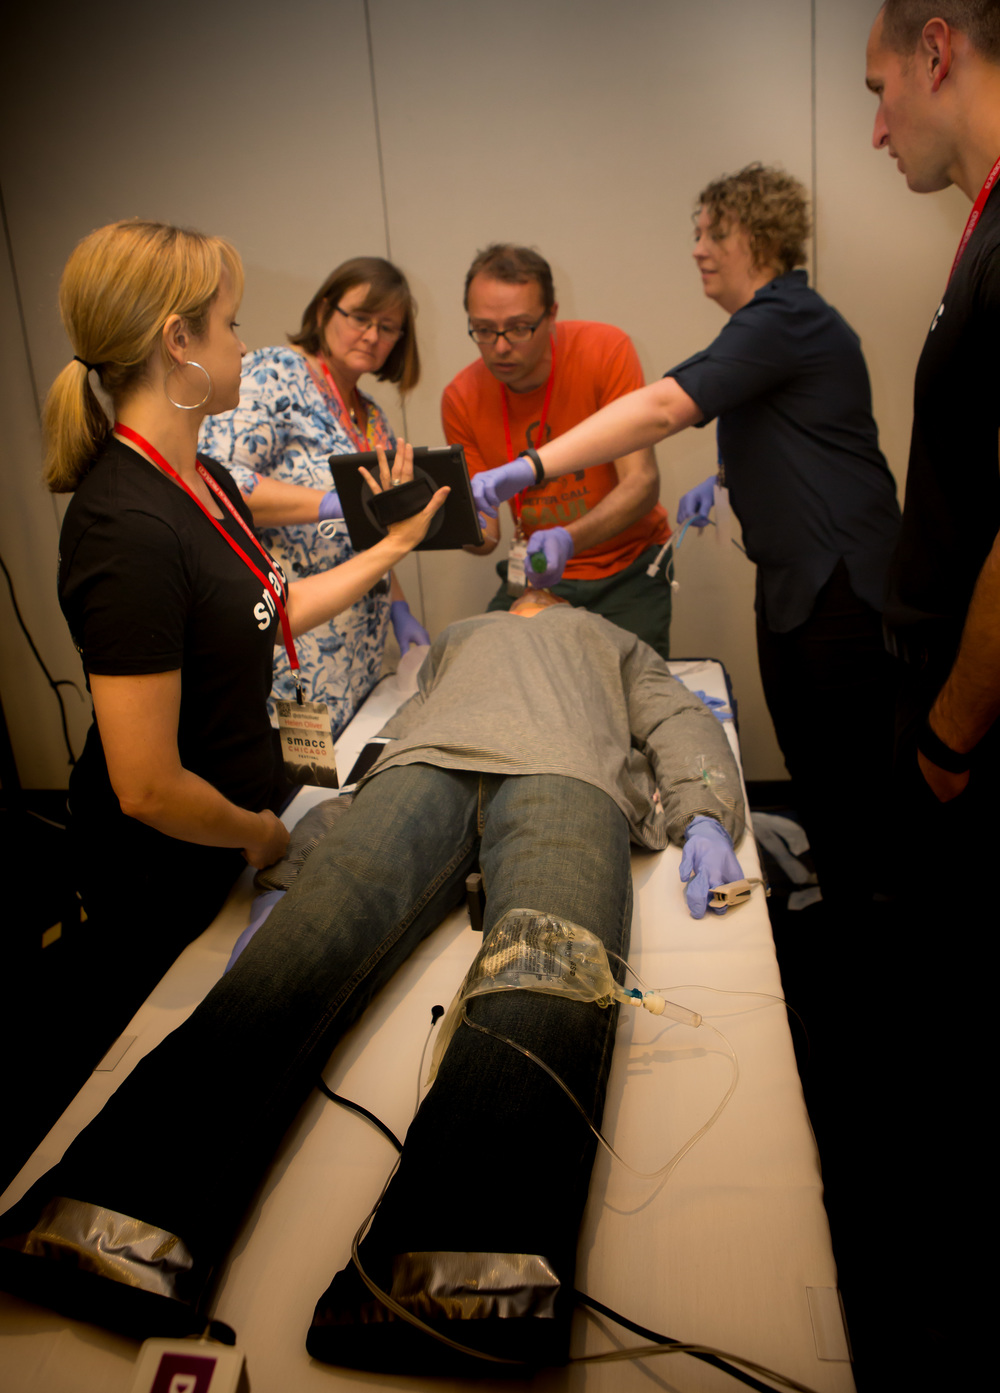 20150624-SMACC AirwayIMGL0351.jpg